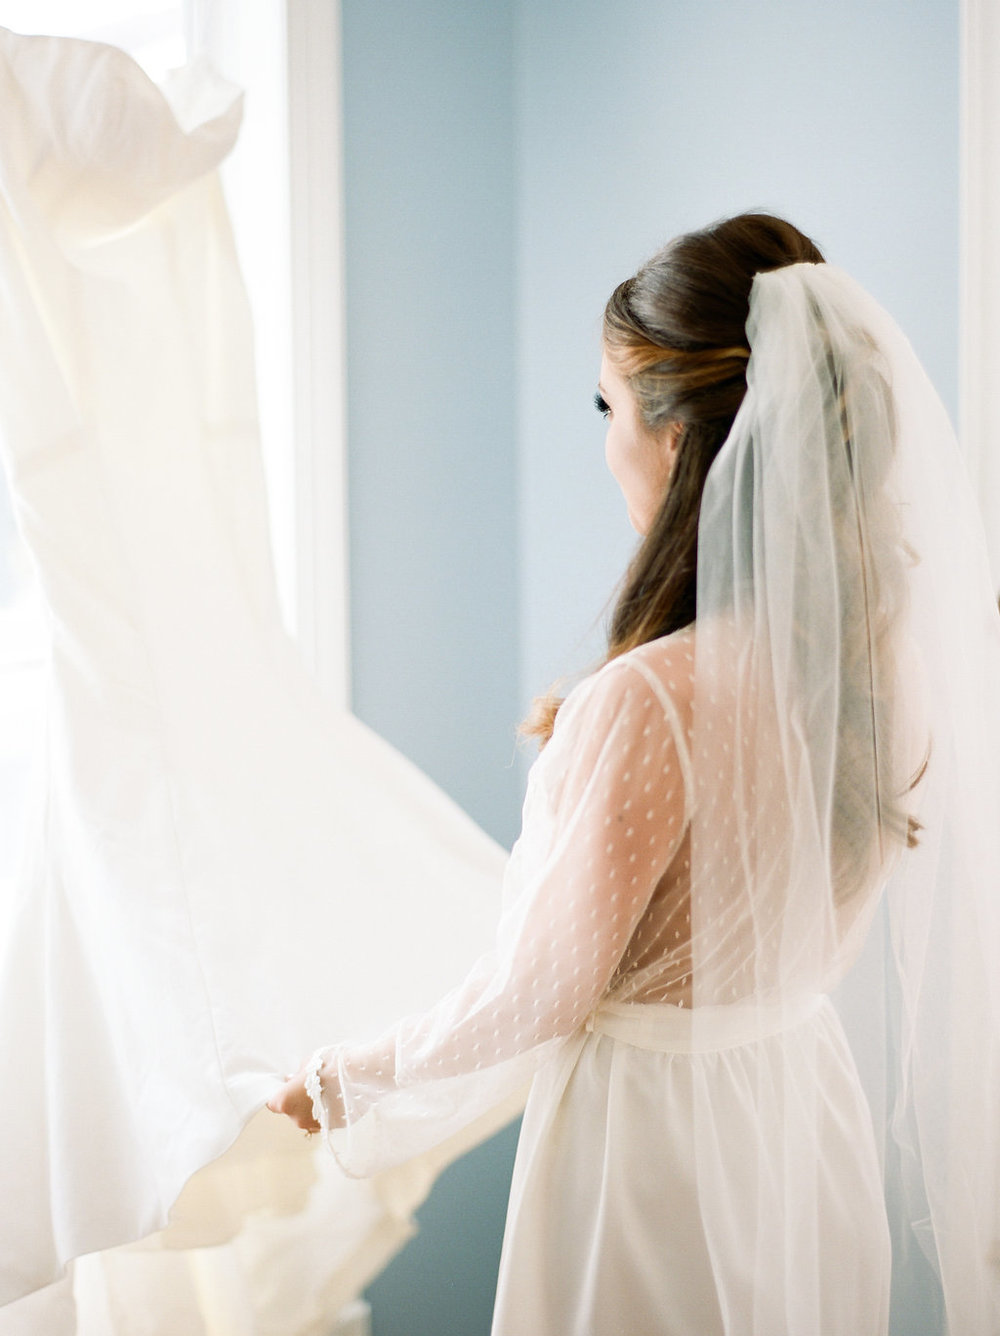 mps-photographie-nicole-miller-dakota-savannah-bridal-boutique-ivory-and-beau-bridal-boutique-savannah-weddings-savannah-bride-southern-bride-savannah-weddings-adele-amelia-veil-2.jpg